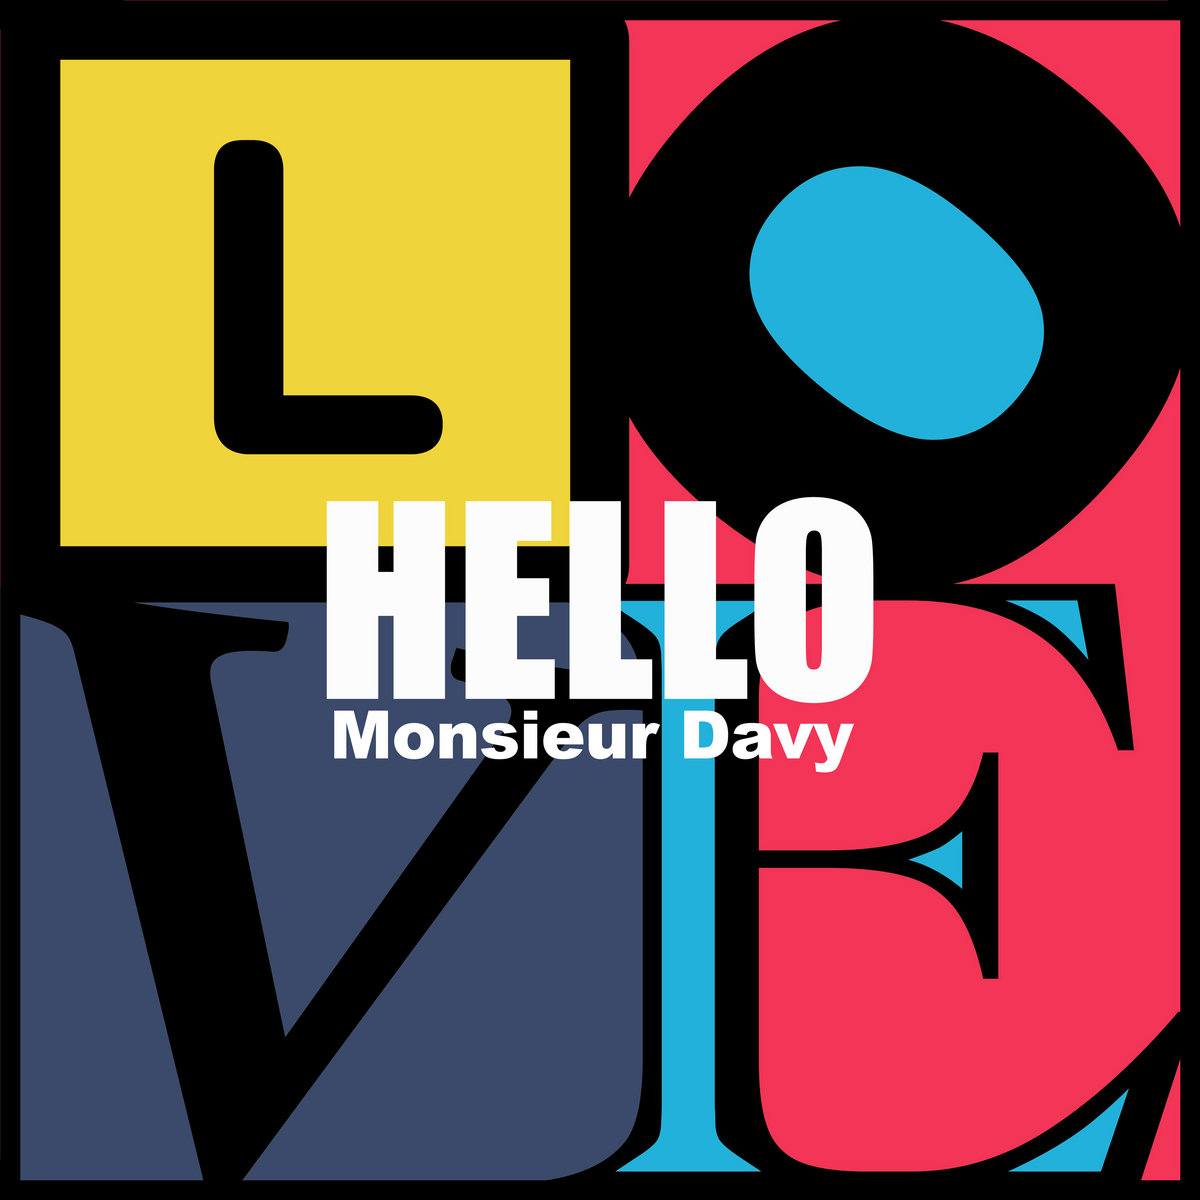 Hello Love by Monsieur Davy